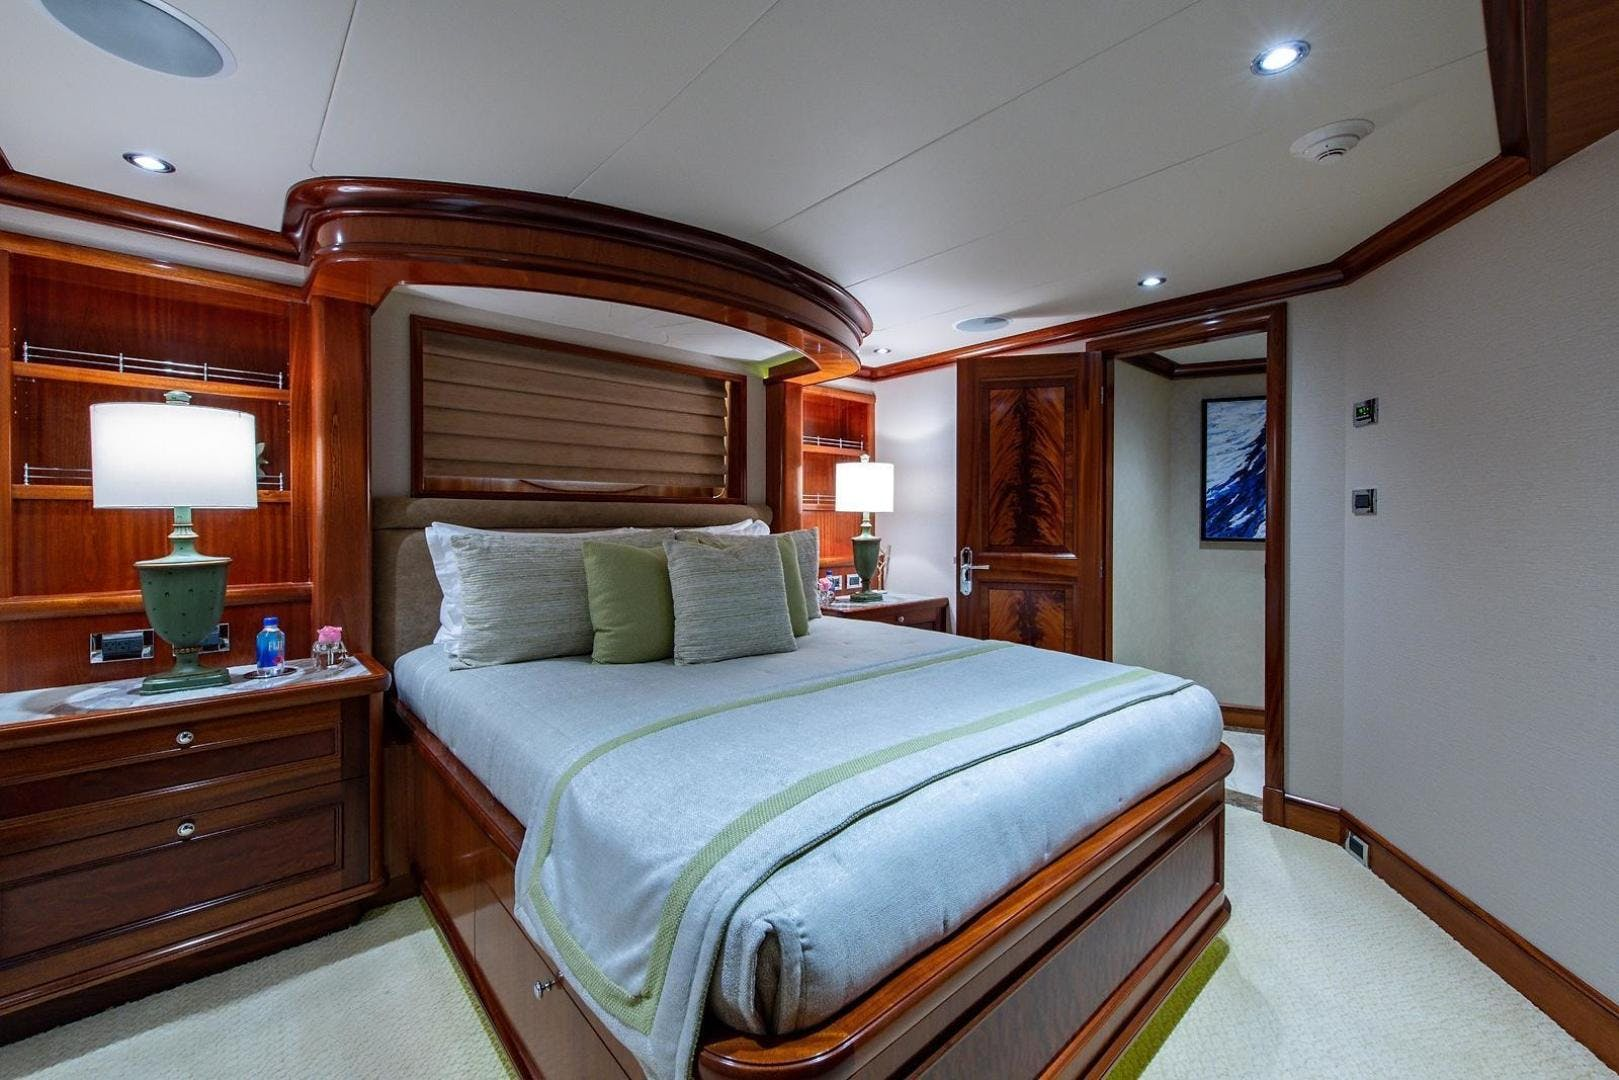 2013 Richmond Yachts 150' Tri-deck Motor Yacht Revive | Picture 3 of 164